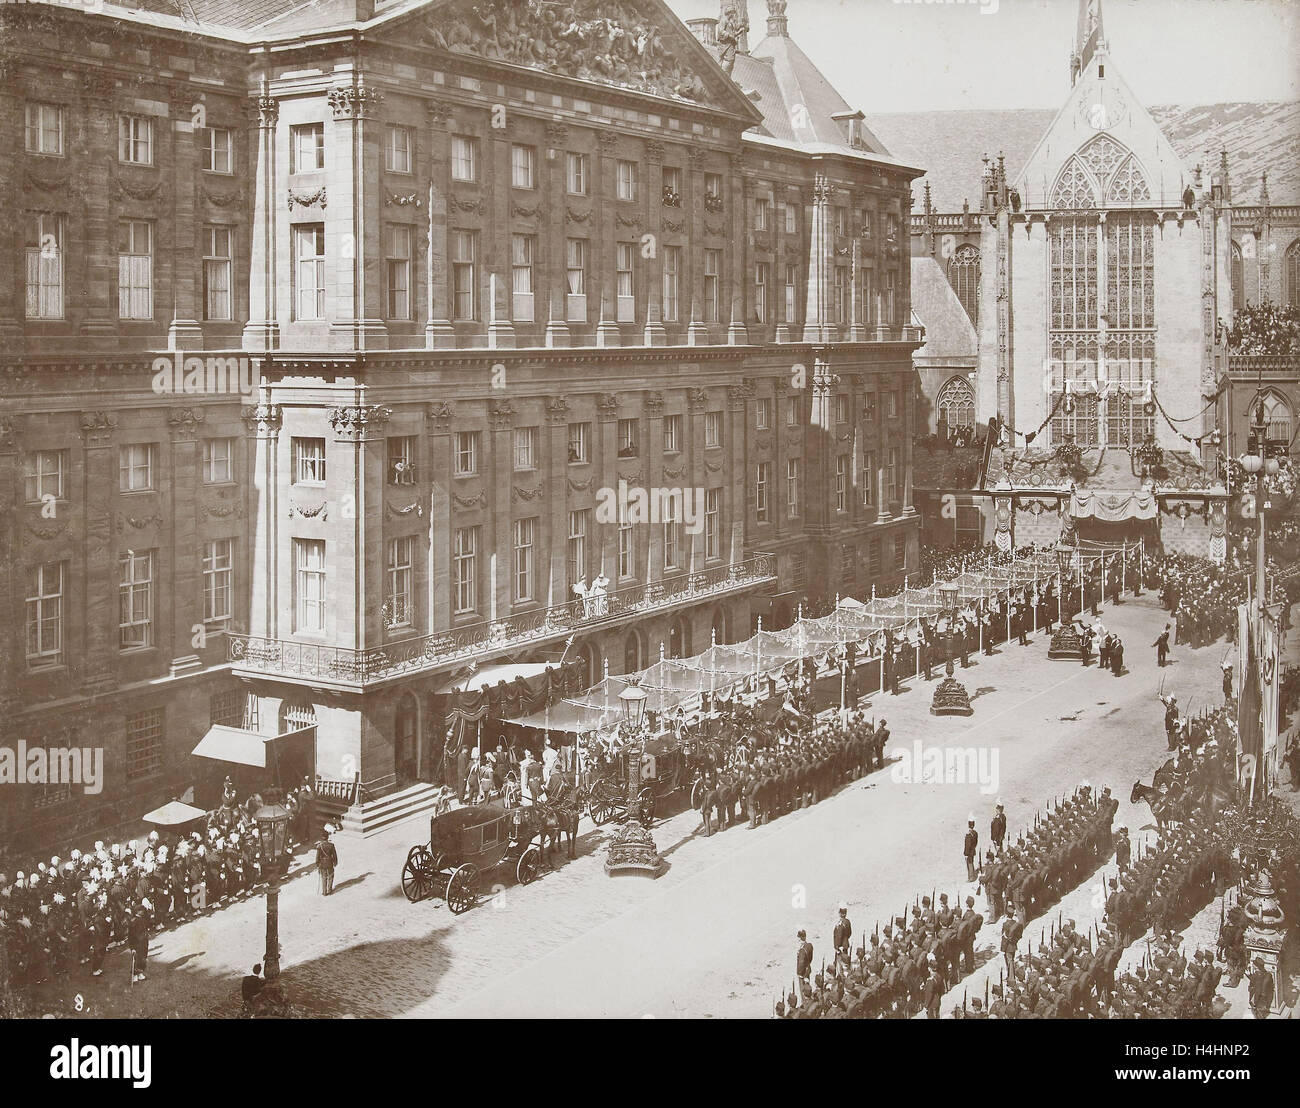 Salute Wilhelmina by soldiers and civilians after her coronation as Queen at the Royal Palace on Dam Square, Amsterdam - Stock Image